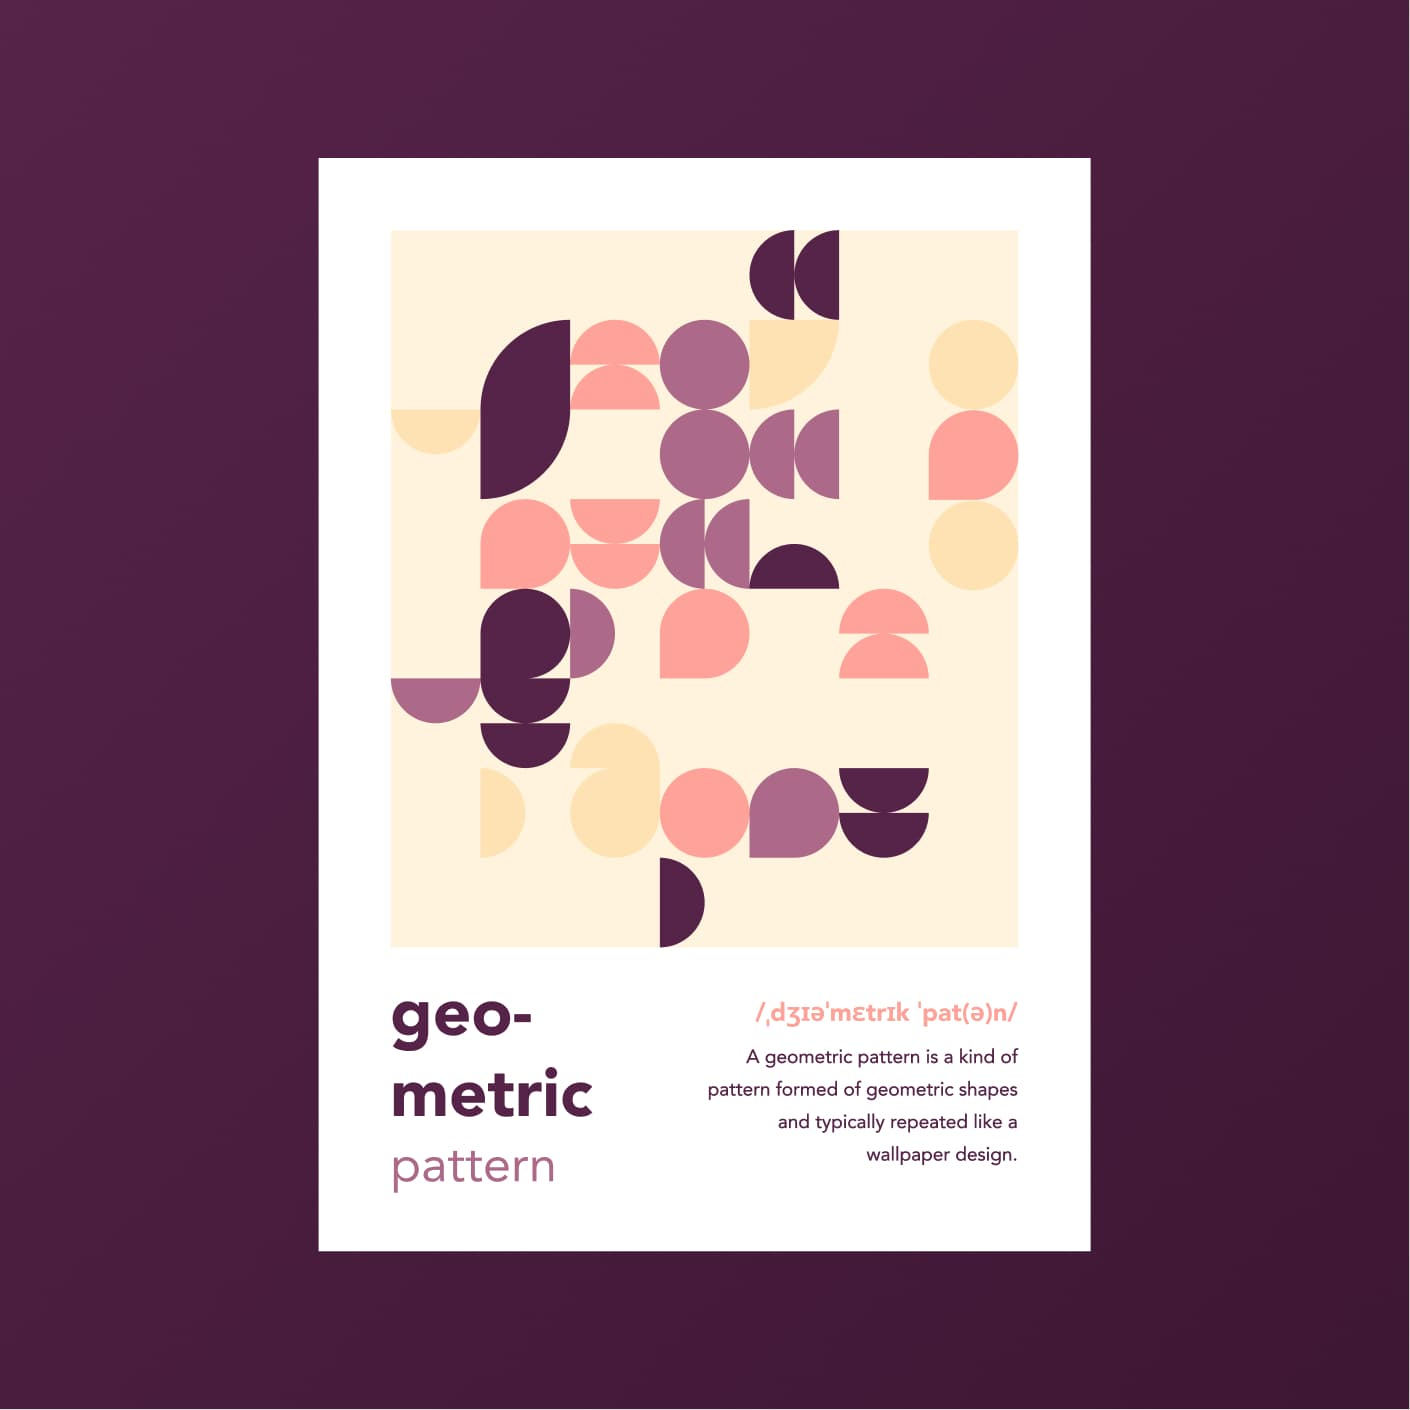 Neat poster design with a geometric pattern